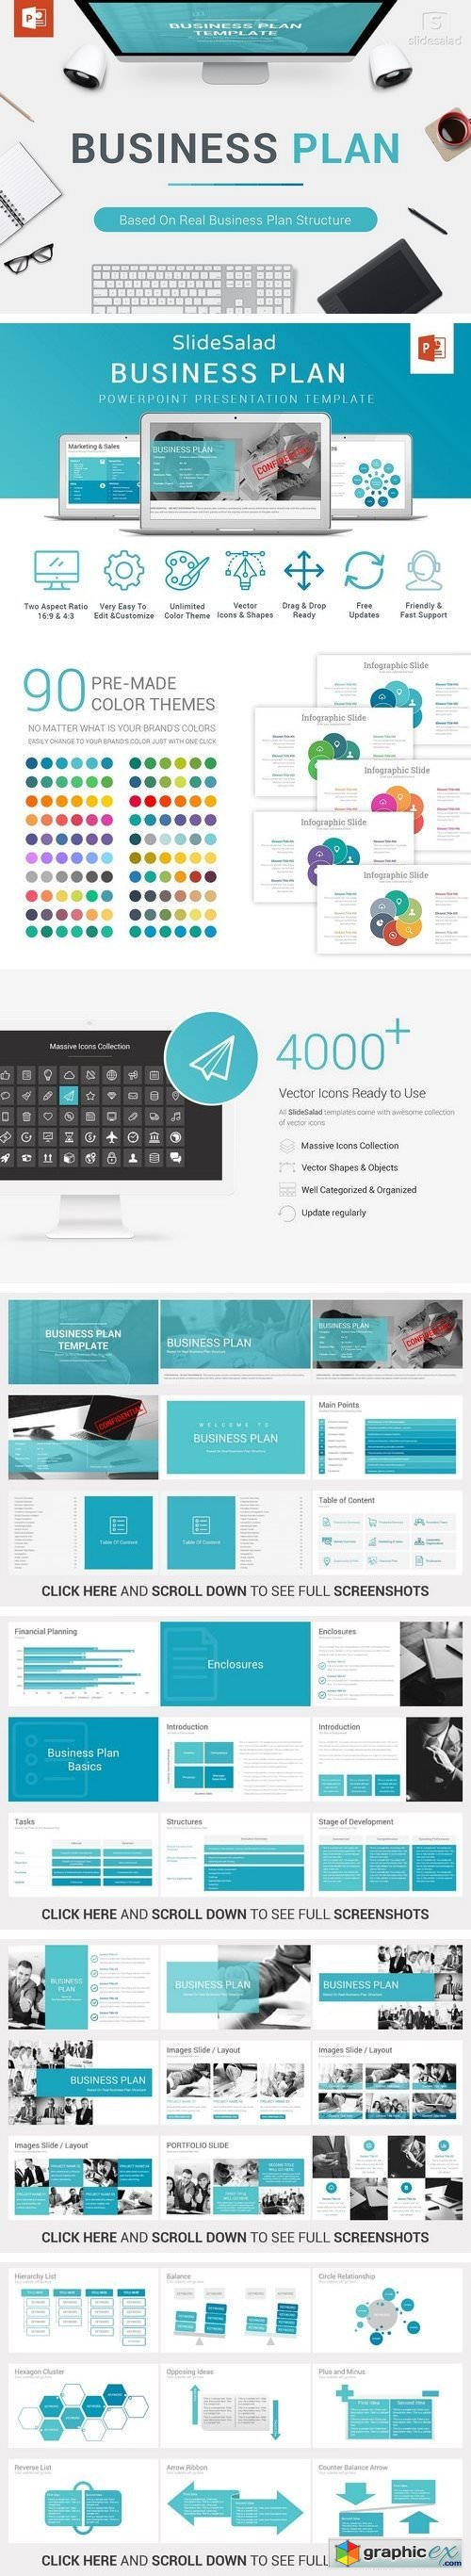 Business plan powerpoint template 1982832 free download vector business plan powerpoint template 1982832 toneelgroepblik Gallery